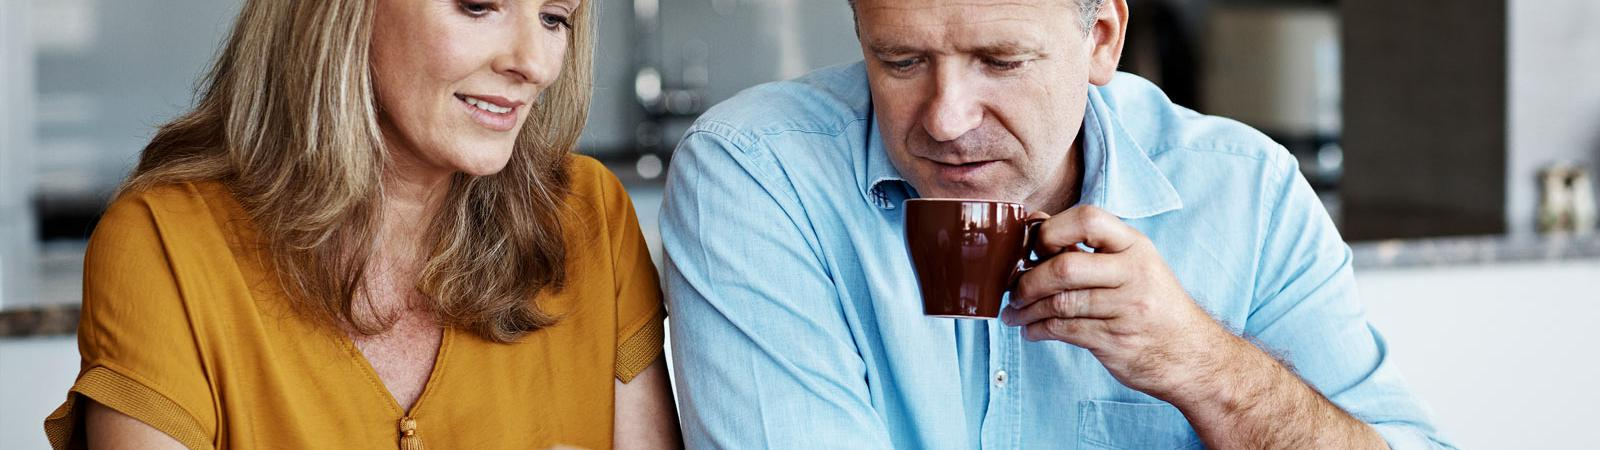 Couple reviewing finances at dining table